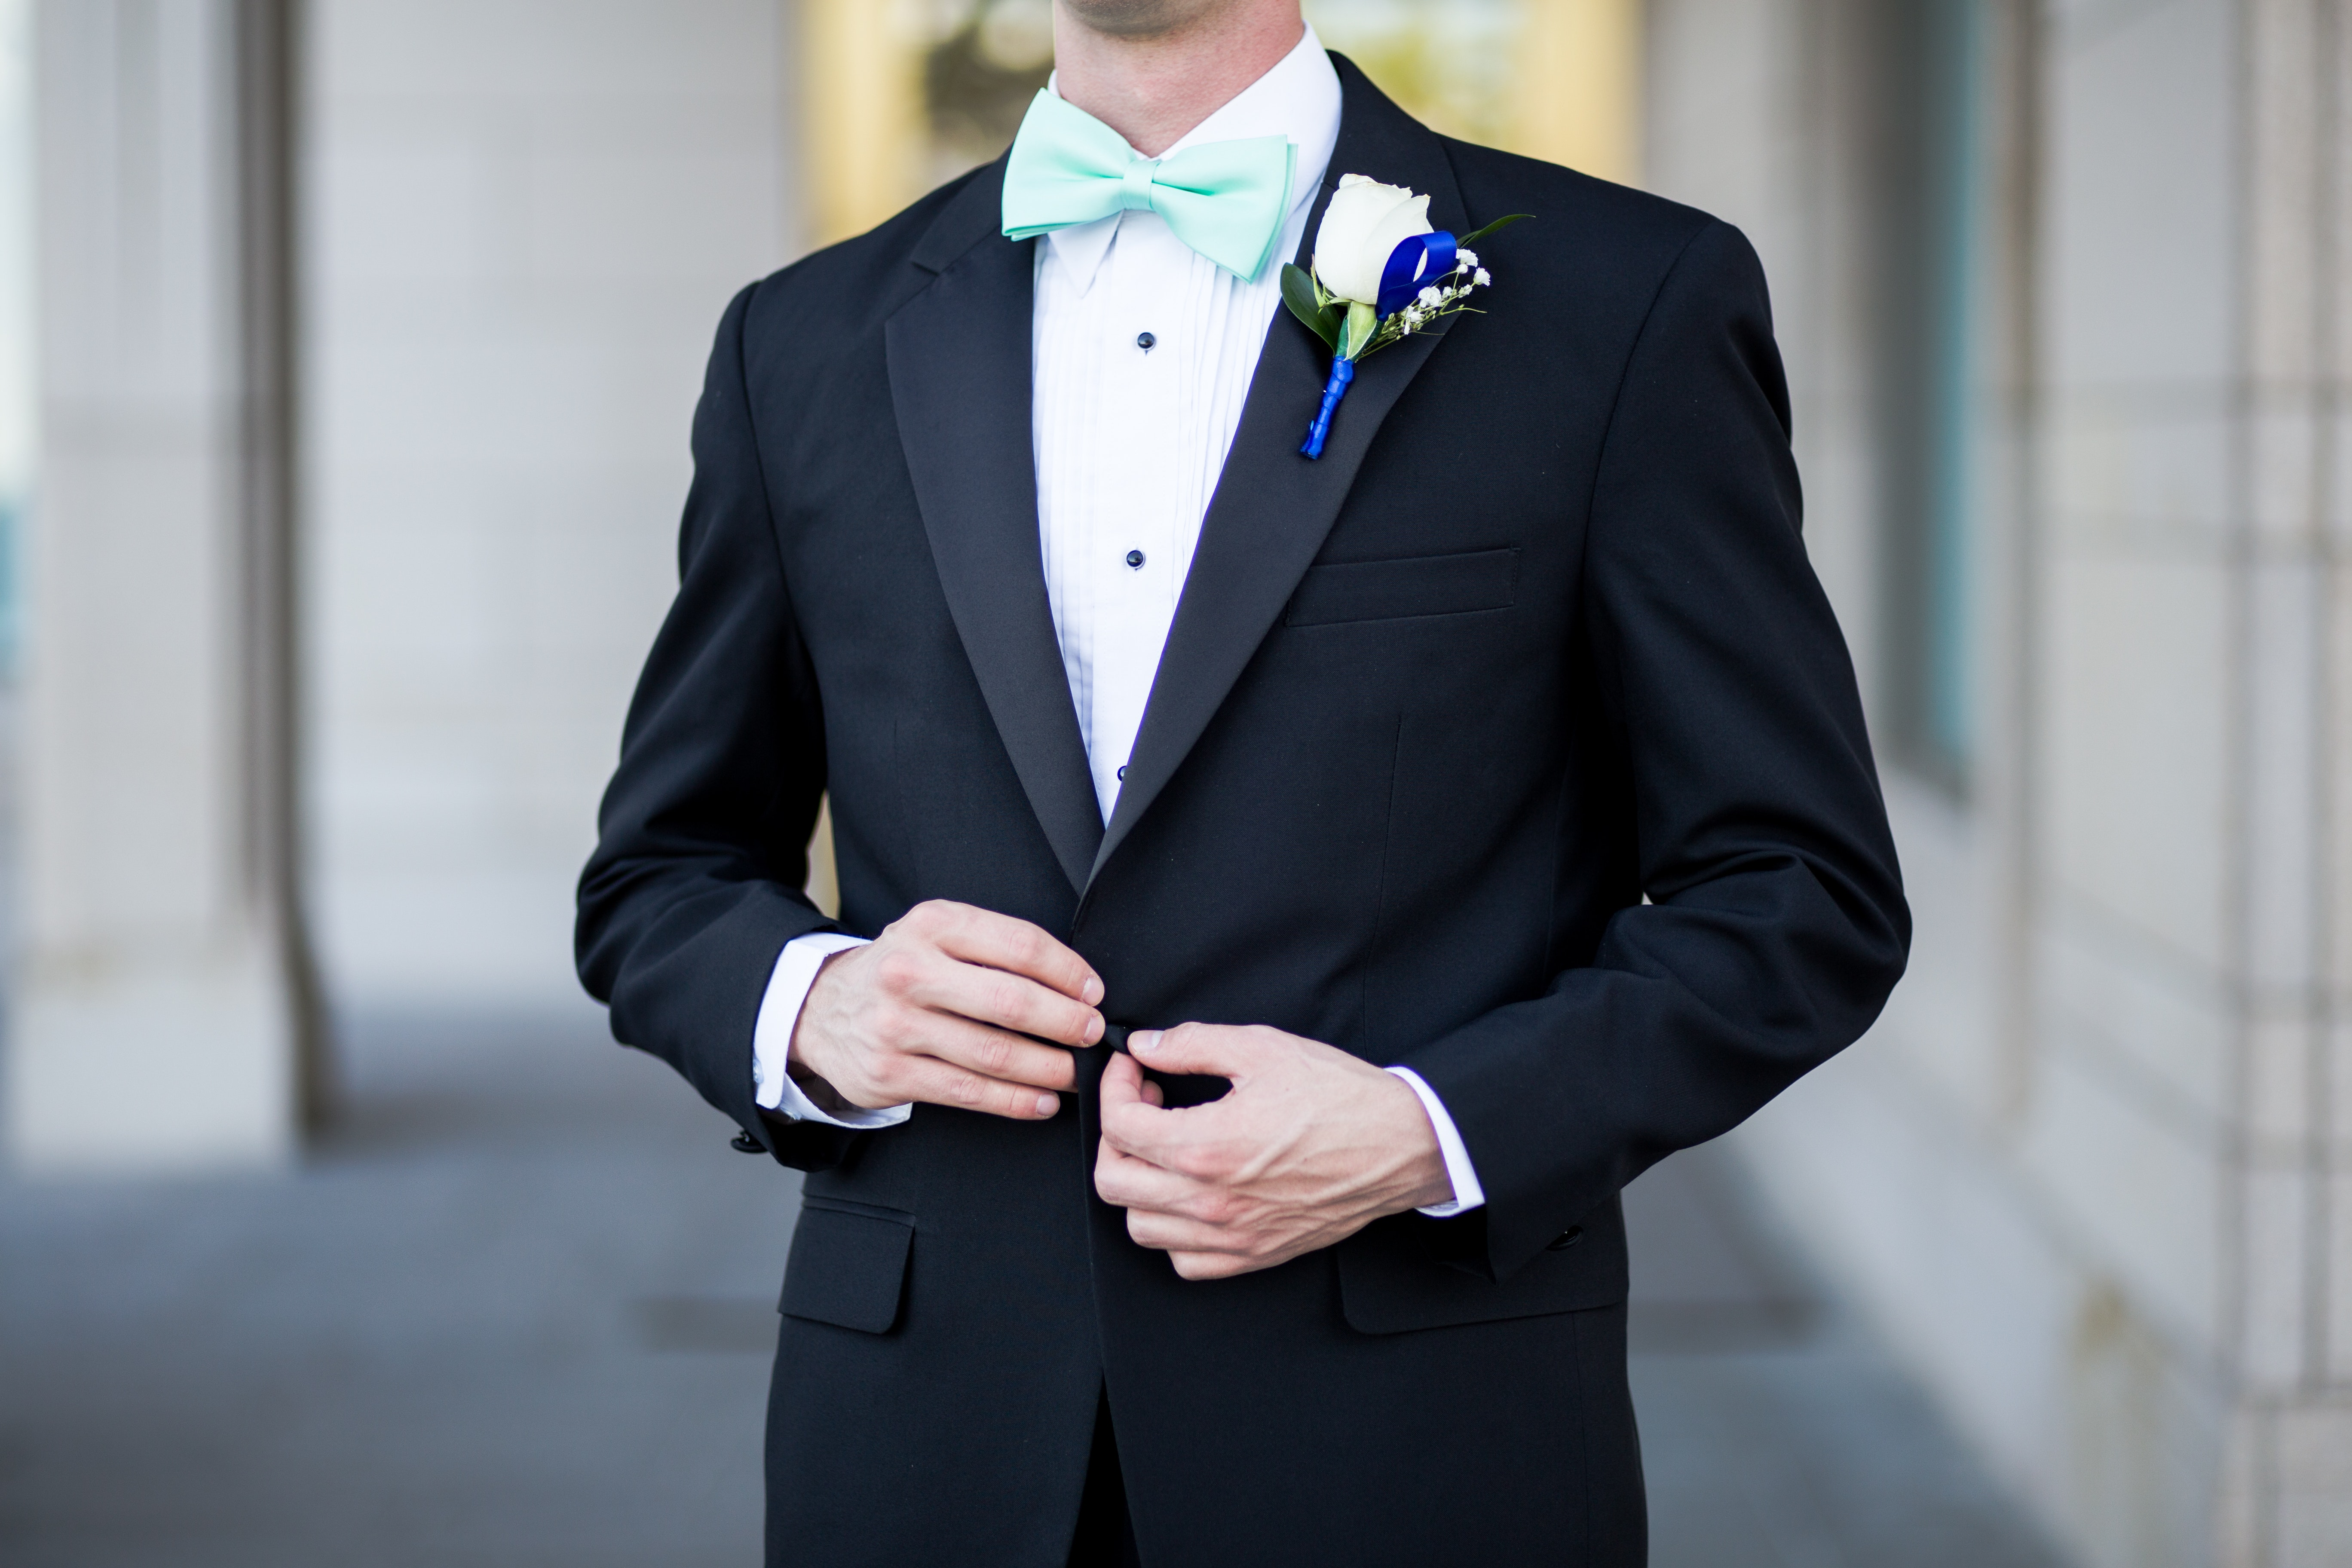 Man Wearing Black and Teal Tuxedo, Adult, Outdoors, Wedding, Tuxedo, HQ Photo